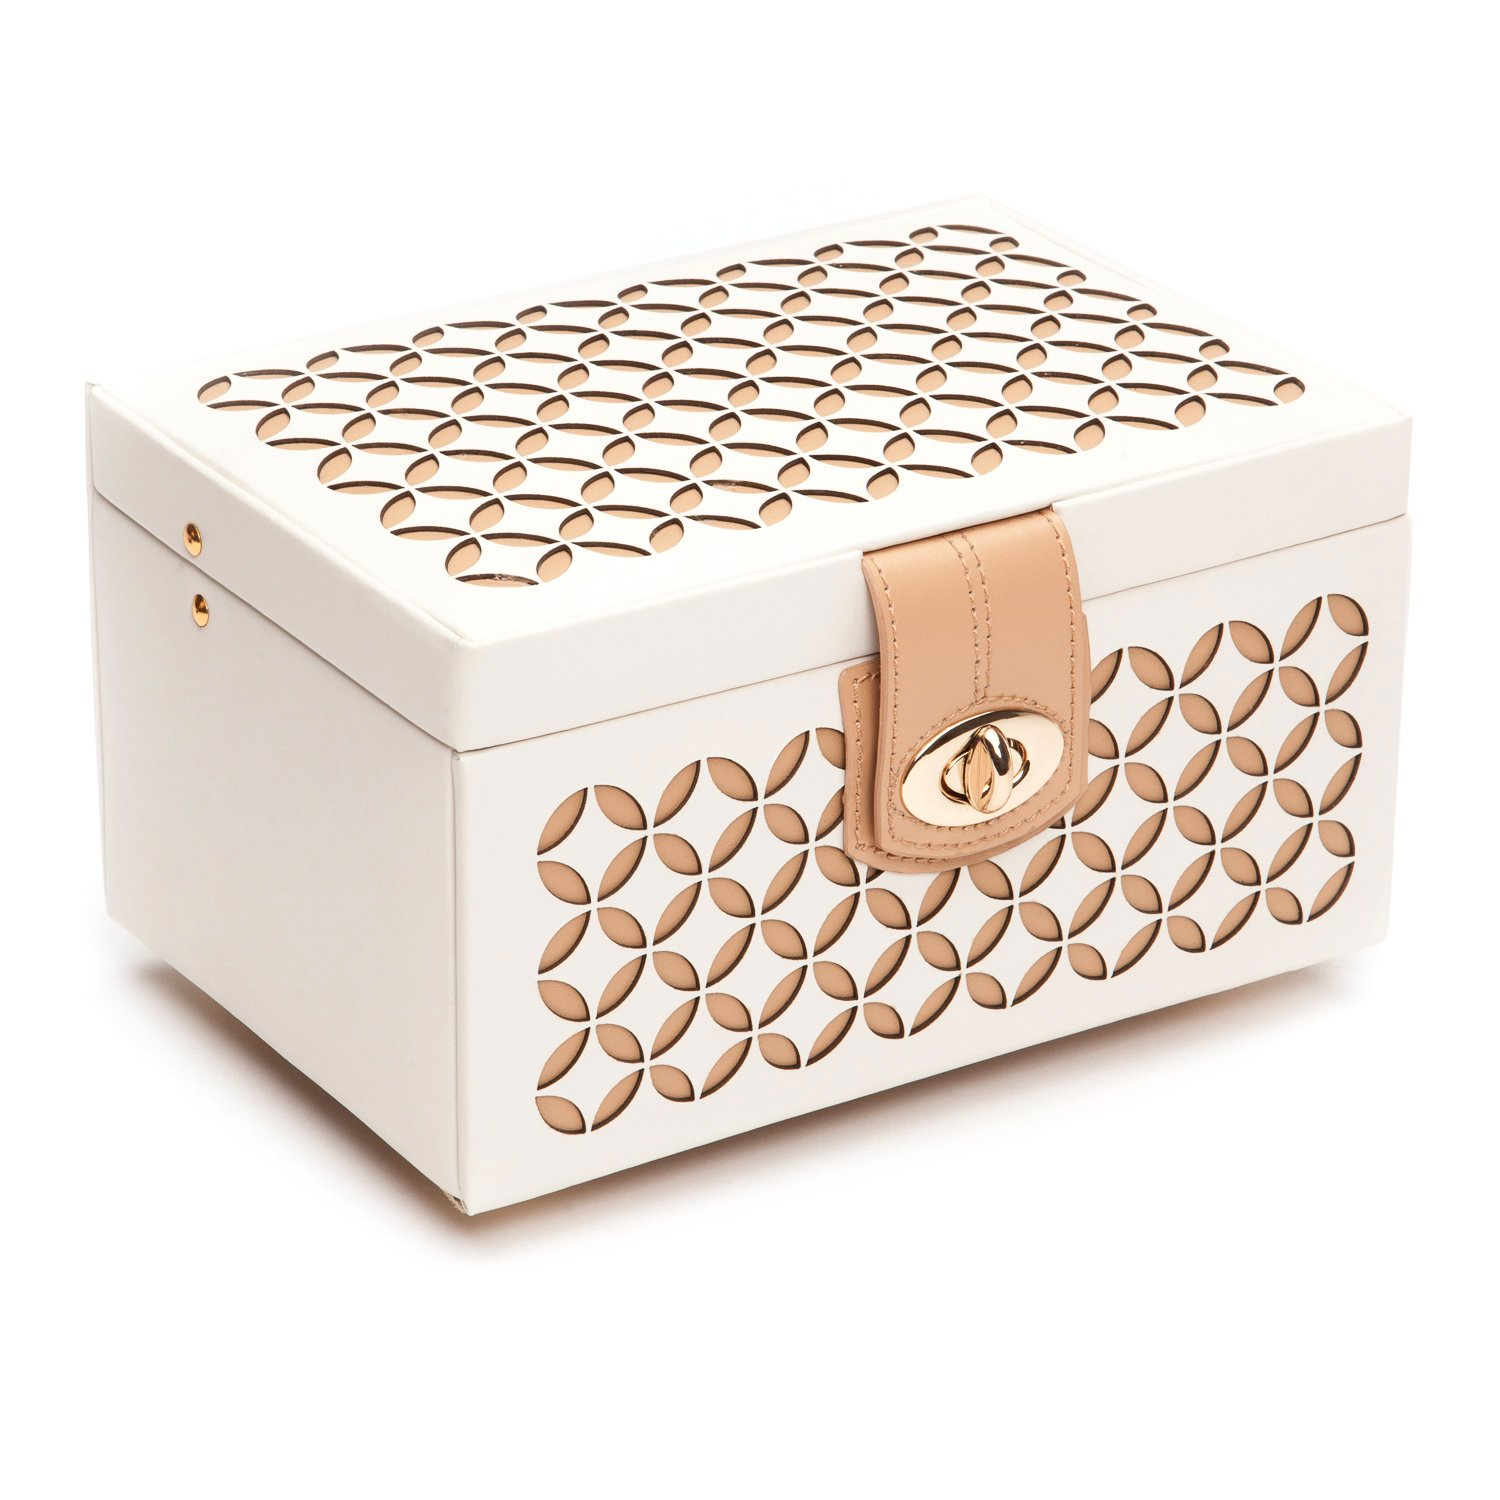 Amazoncom WOLF 301153 Chloe Small Jewelry Box Cream Home Kitchen